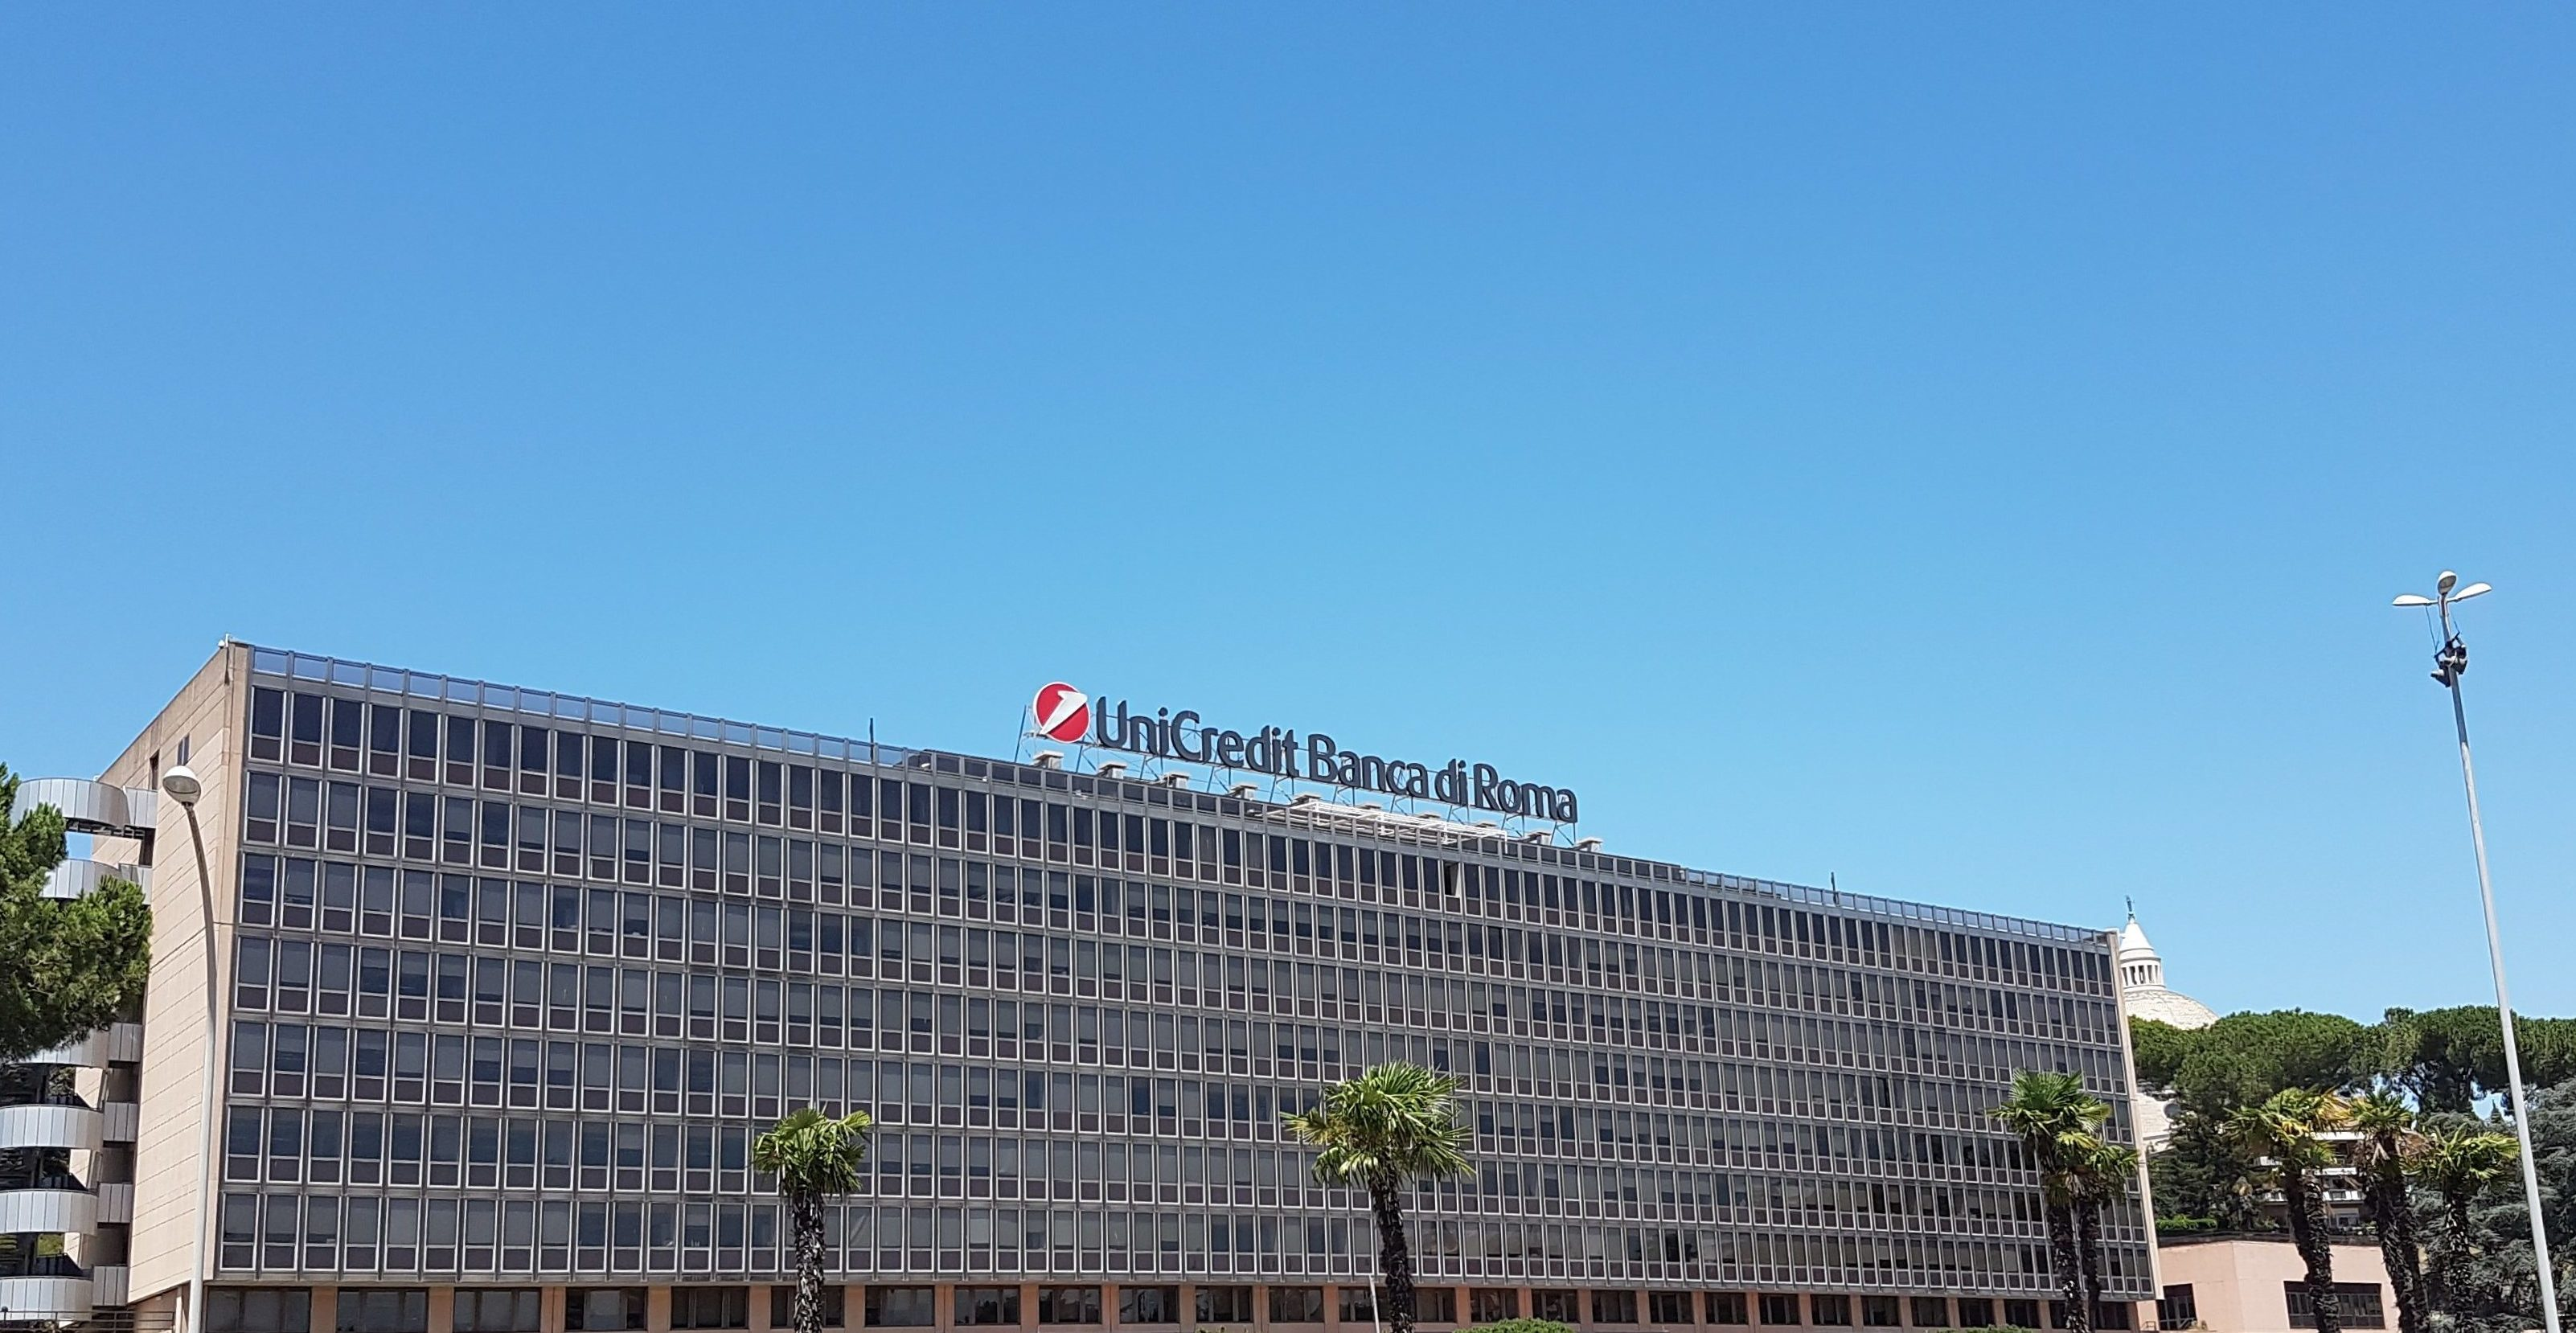 Recir - Global Service to Unicredit buildings in Rome